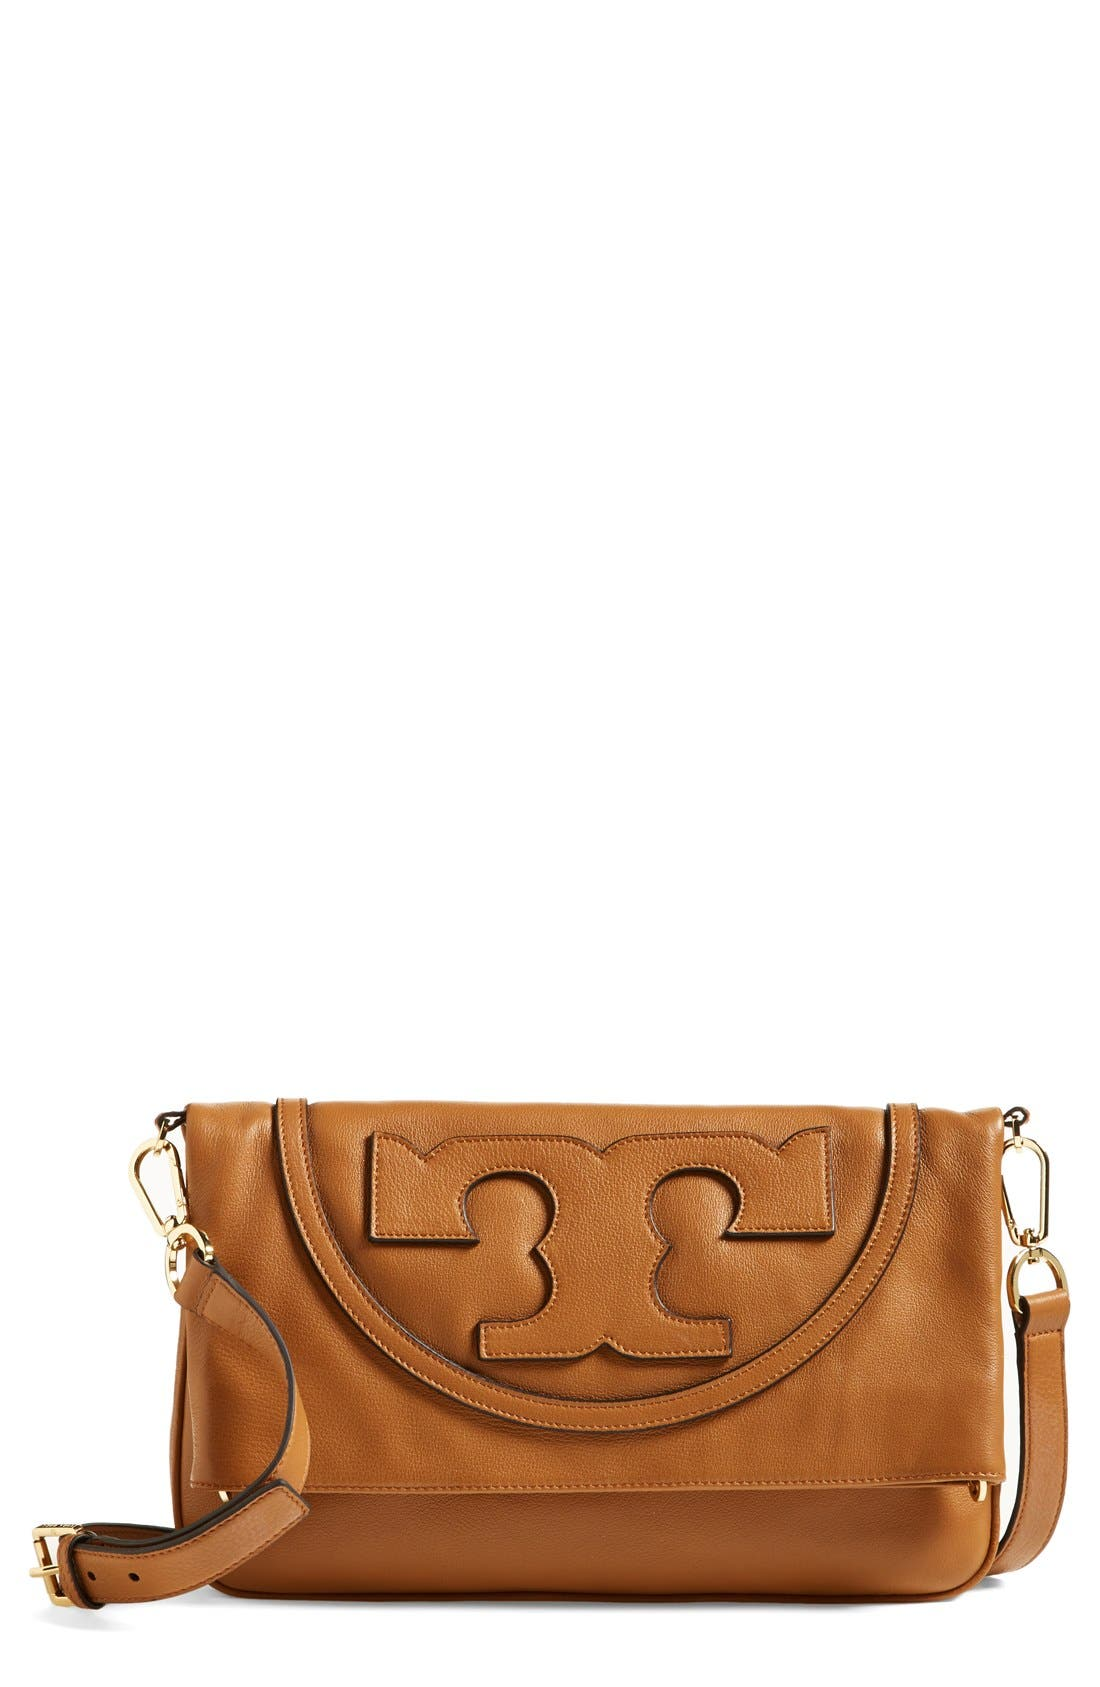 Main Image - Tory Burch 'All T Suki' Leather Crossbody Bag